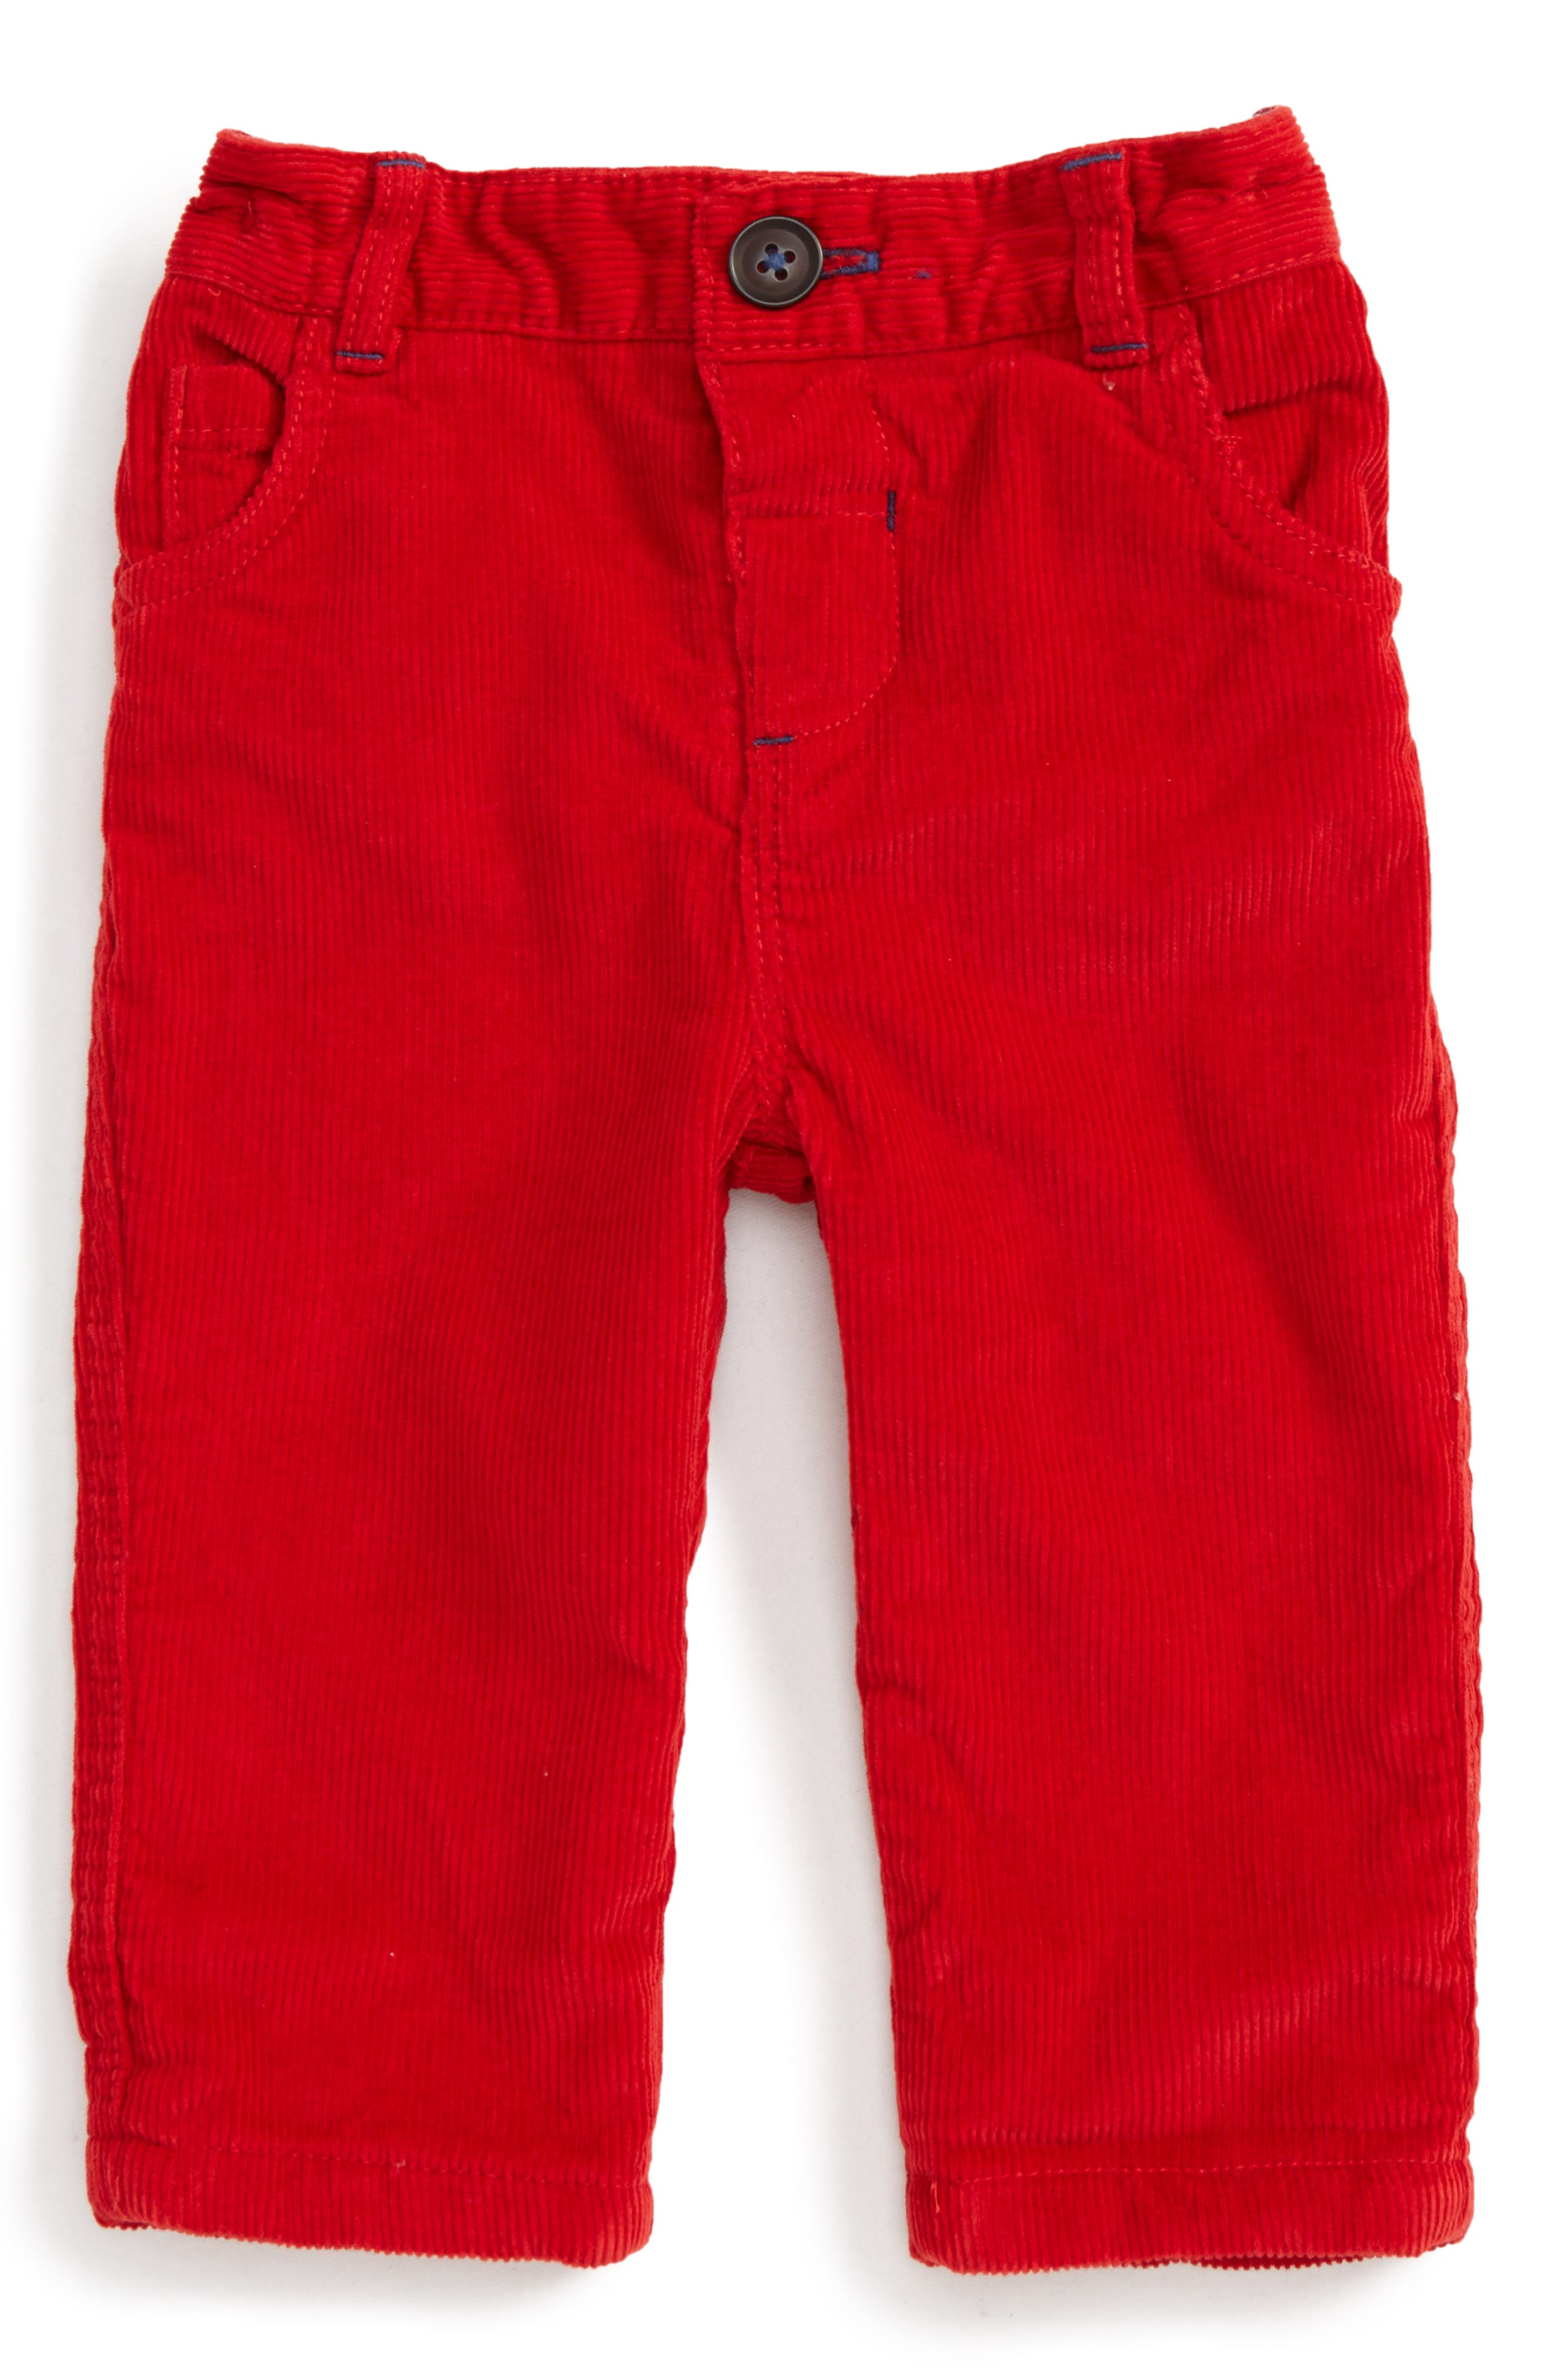 Alternate Image 1 Selected - Mini Boden Lined Corduroy Pants (Baby Boys & Toddler Boys)